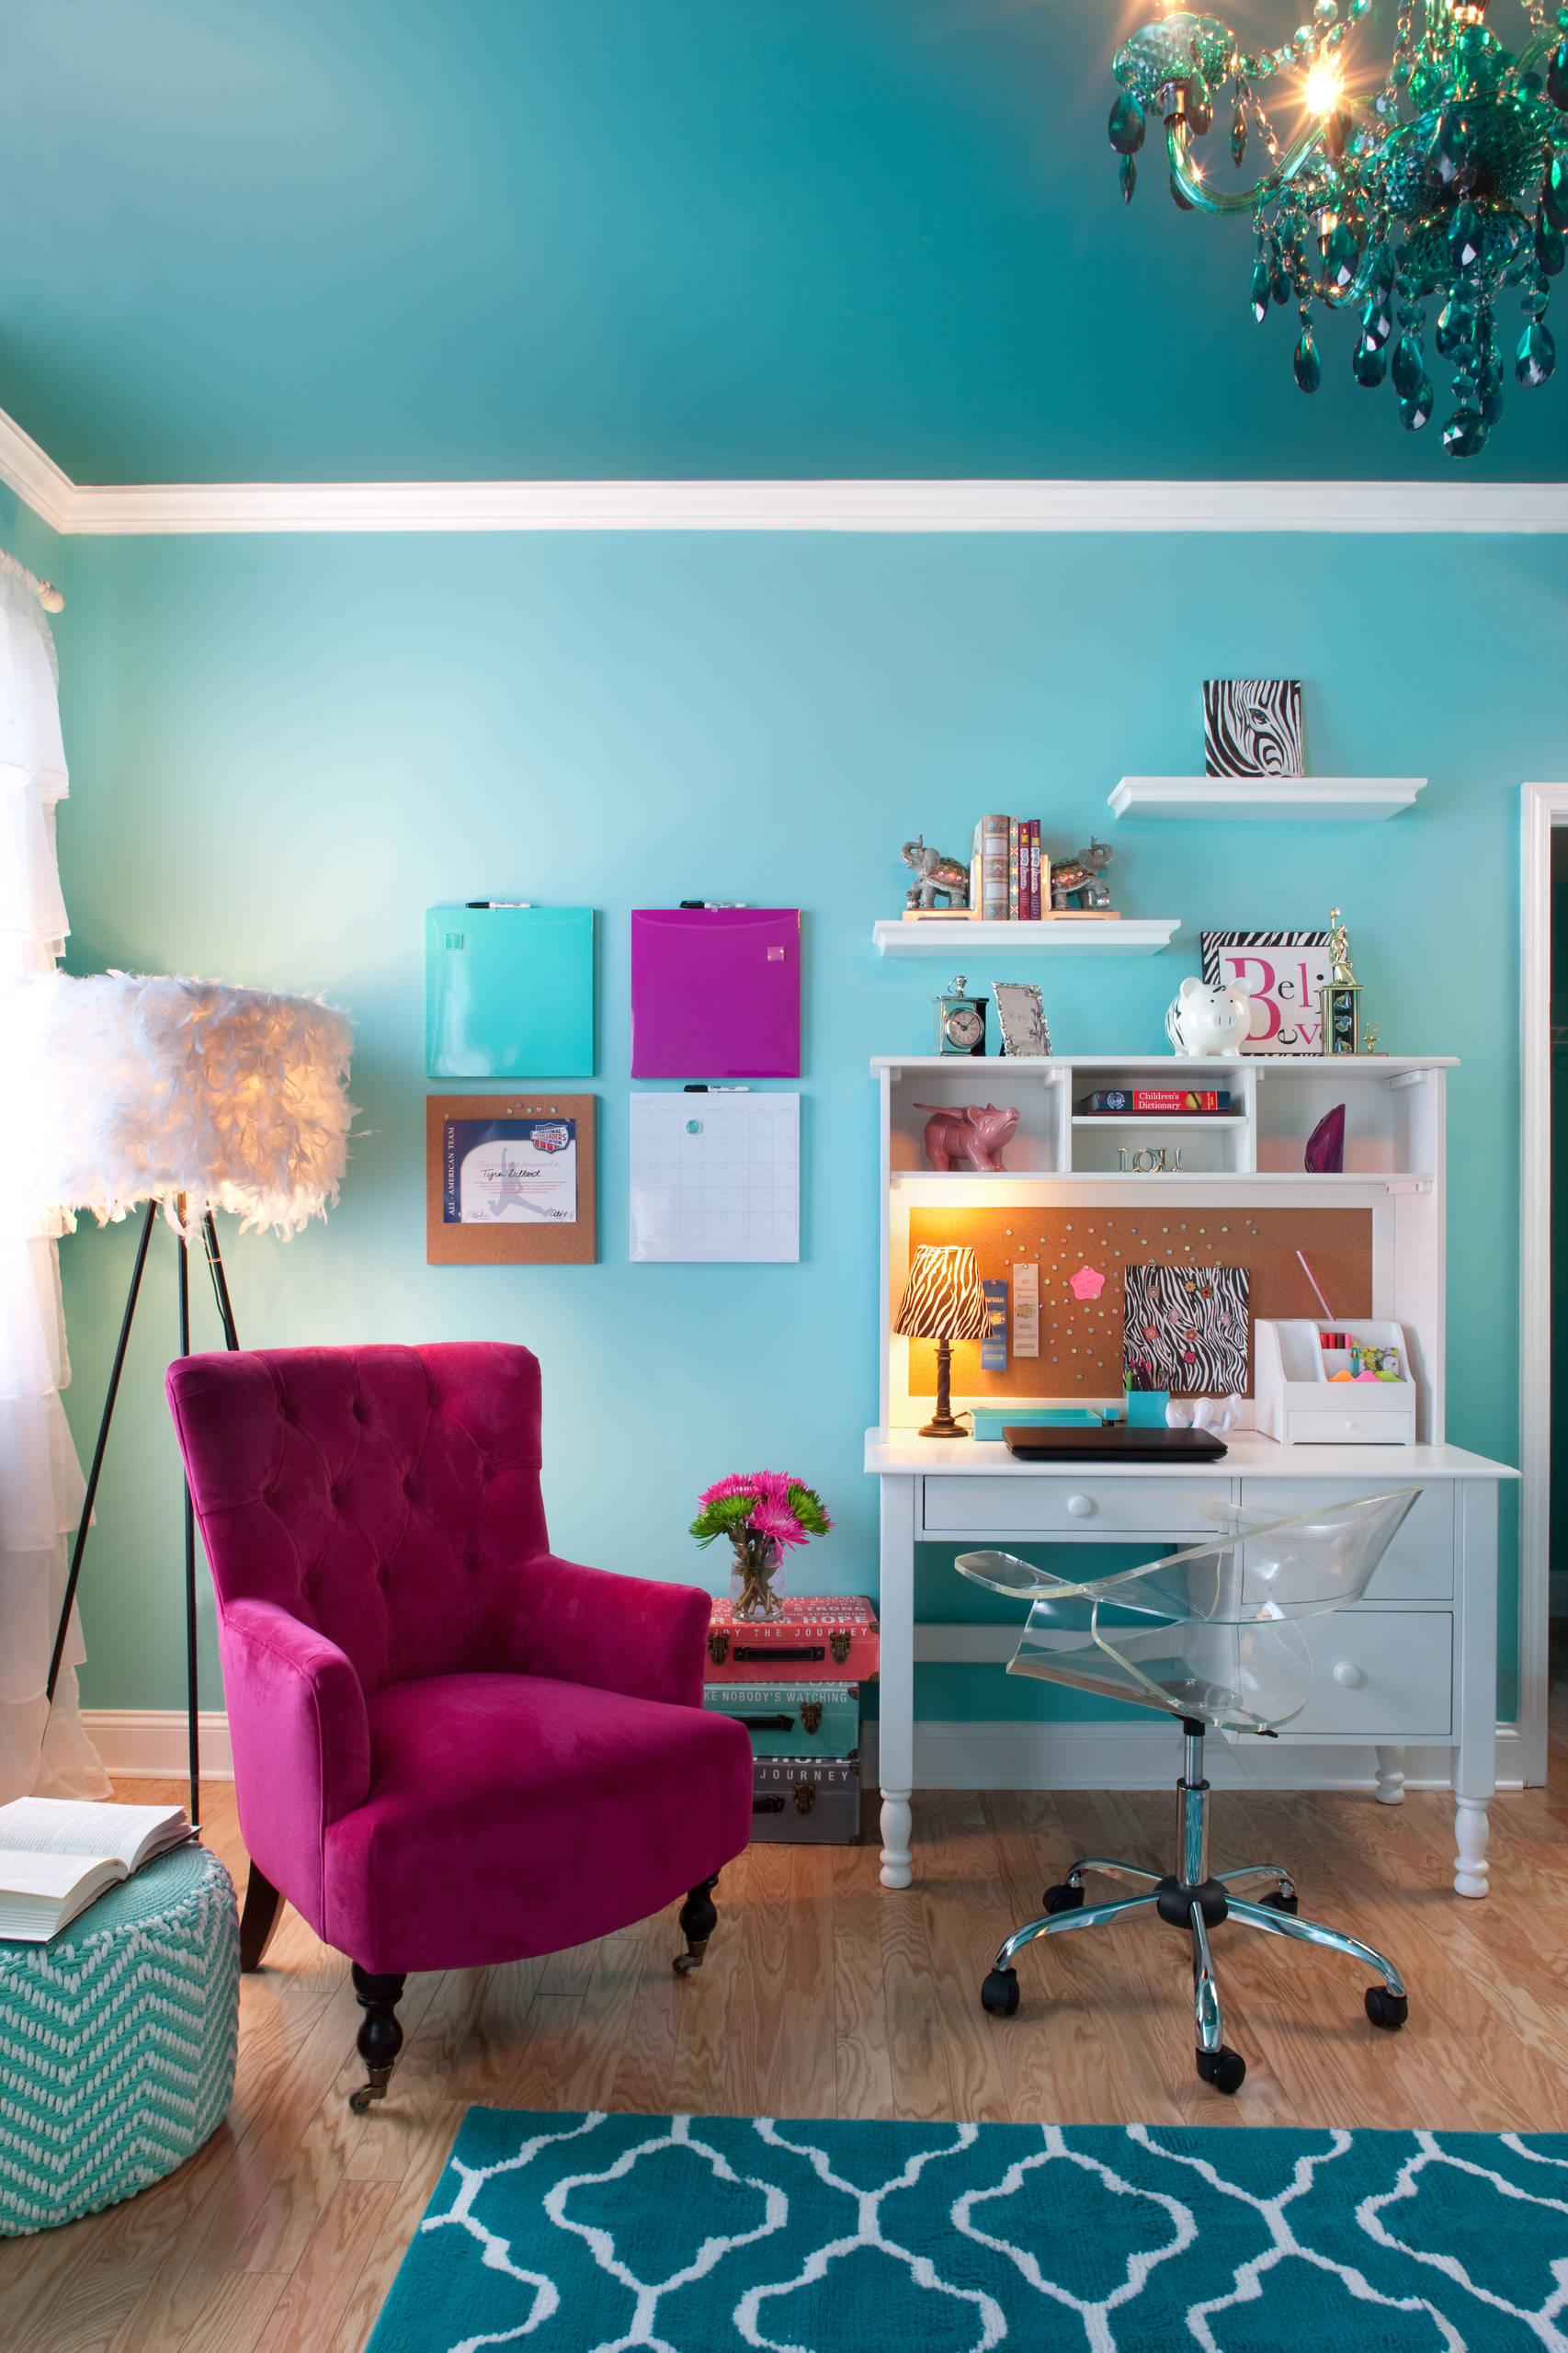 75 Beautiful Kids Room Pictures Ideas Color Turquoise February 2021 Houzz